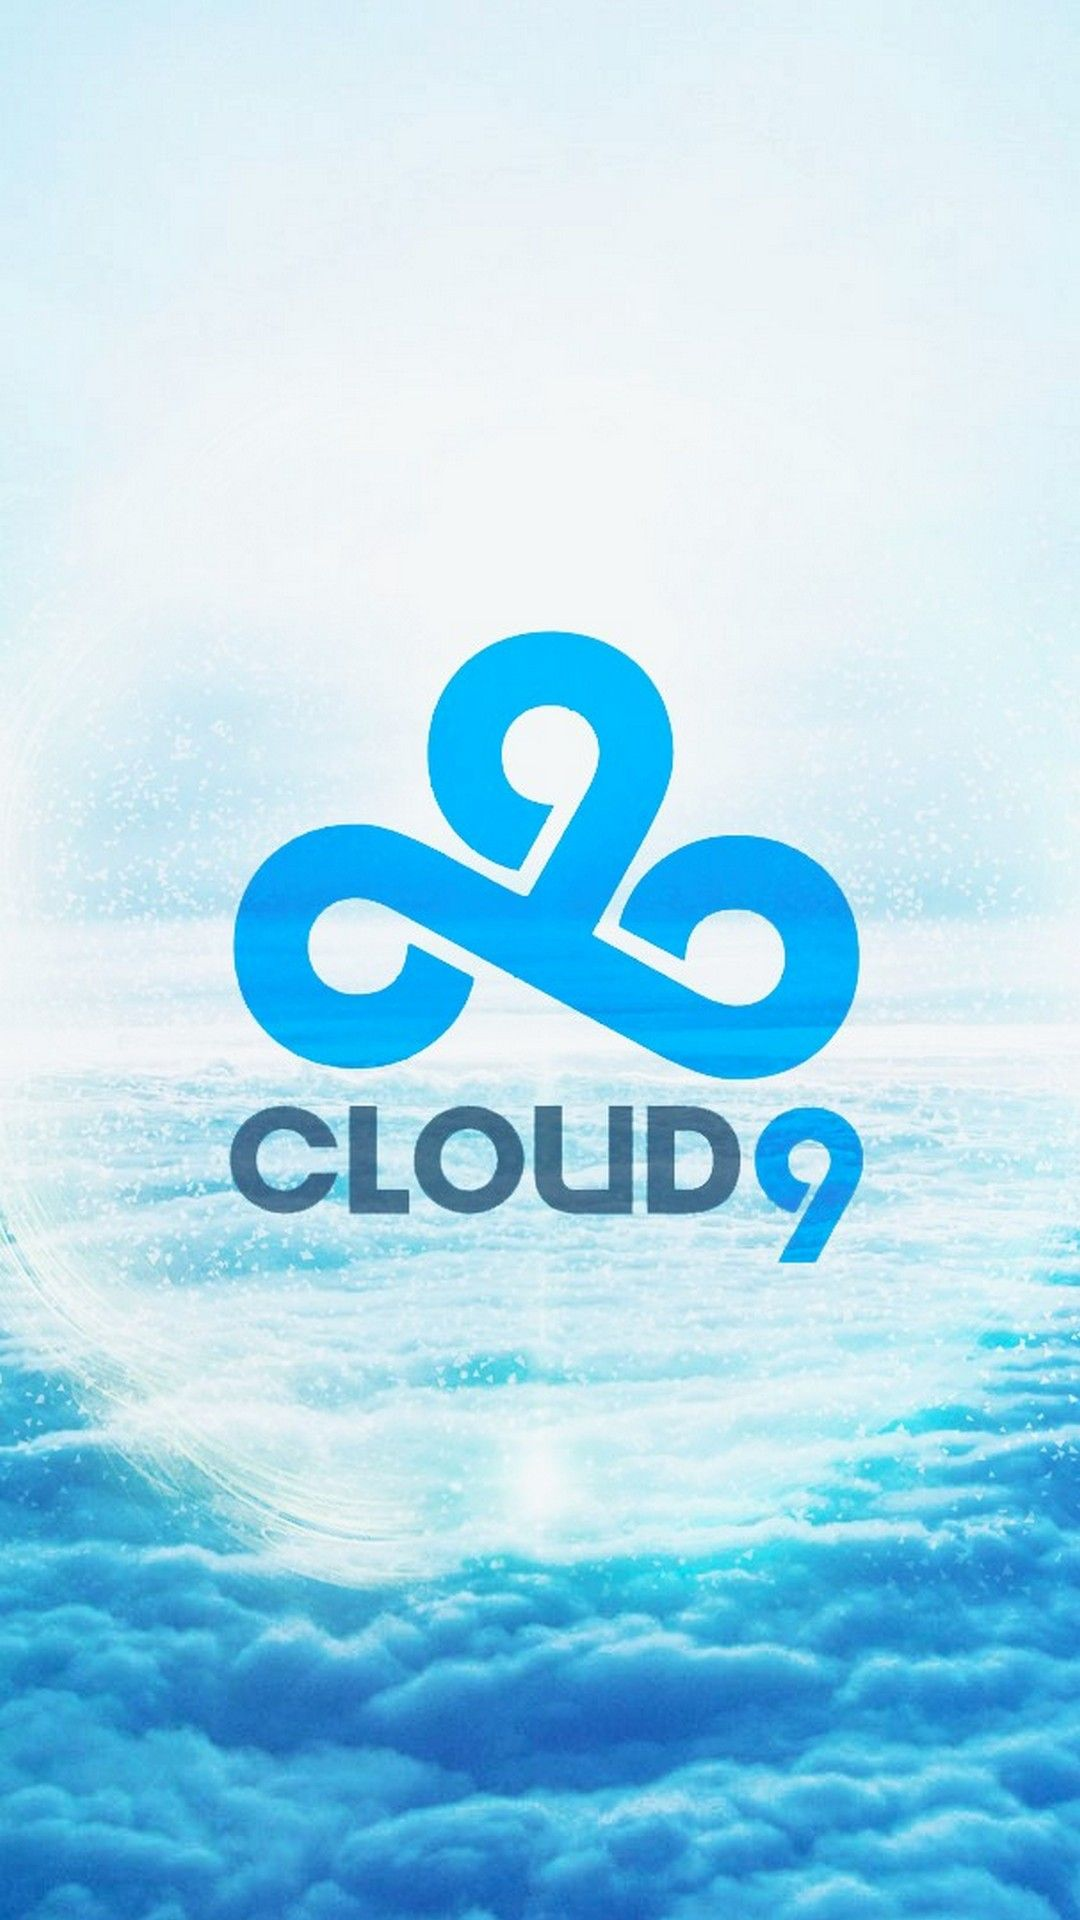 Cloud9 Background For iPhone 8 Iphone wallpaper, Best